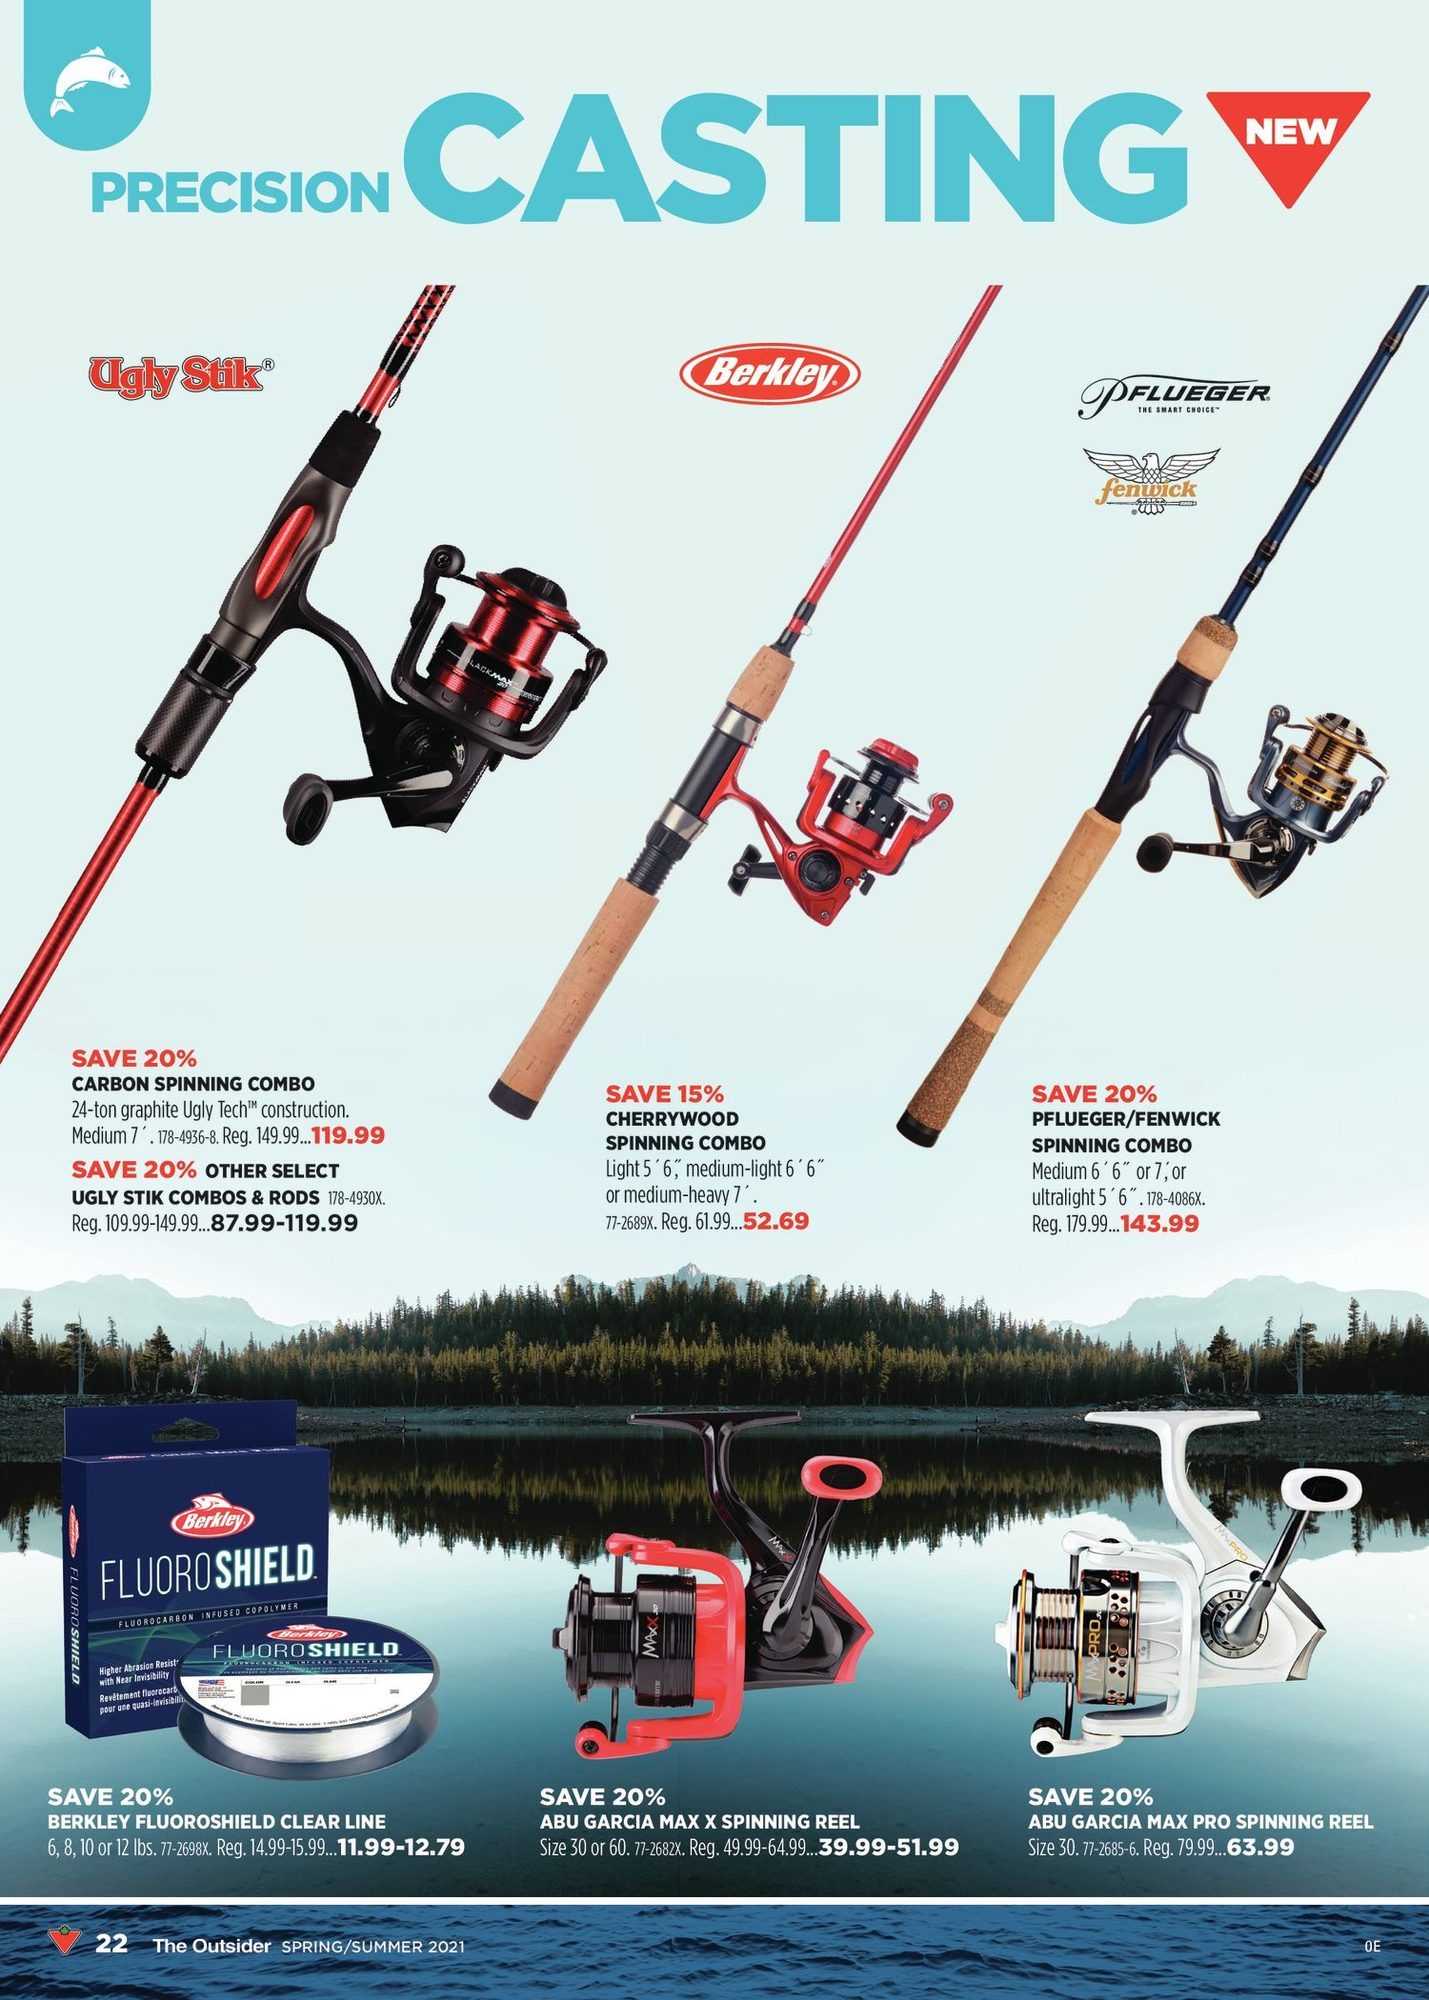 Canadian Tire - The Outsider - Spring/Summer 2021 - Page 22